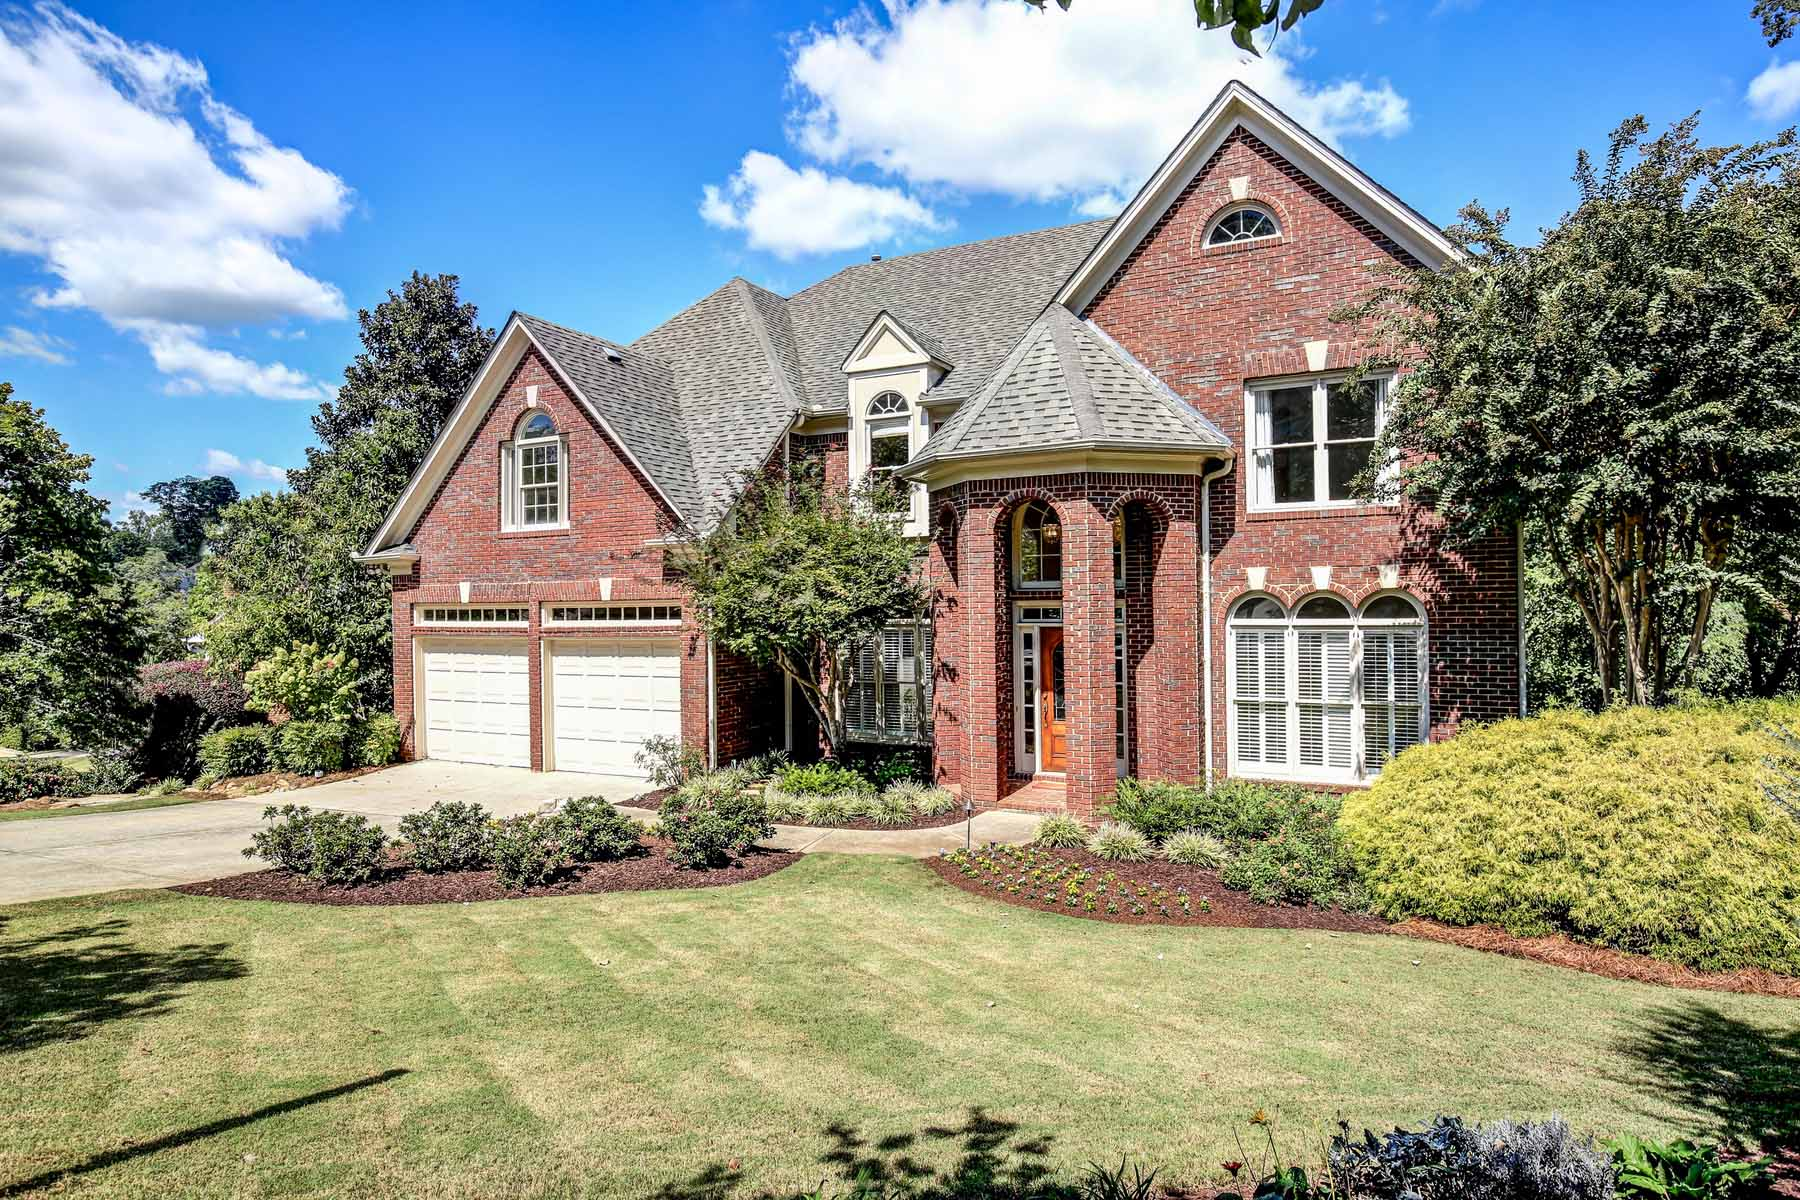 一戸建て のために 売買 アット Rarely Available Intown Updated Executive Home in Swim Community 1825 Grist Stone Court Druid Hills, Atlanta, ジョージア, 30307 アメリカ合衆国